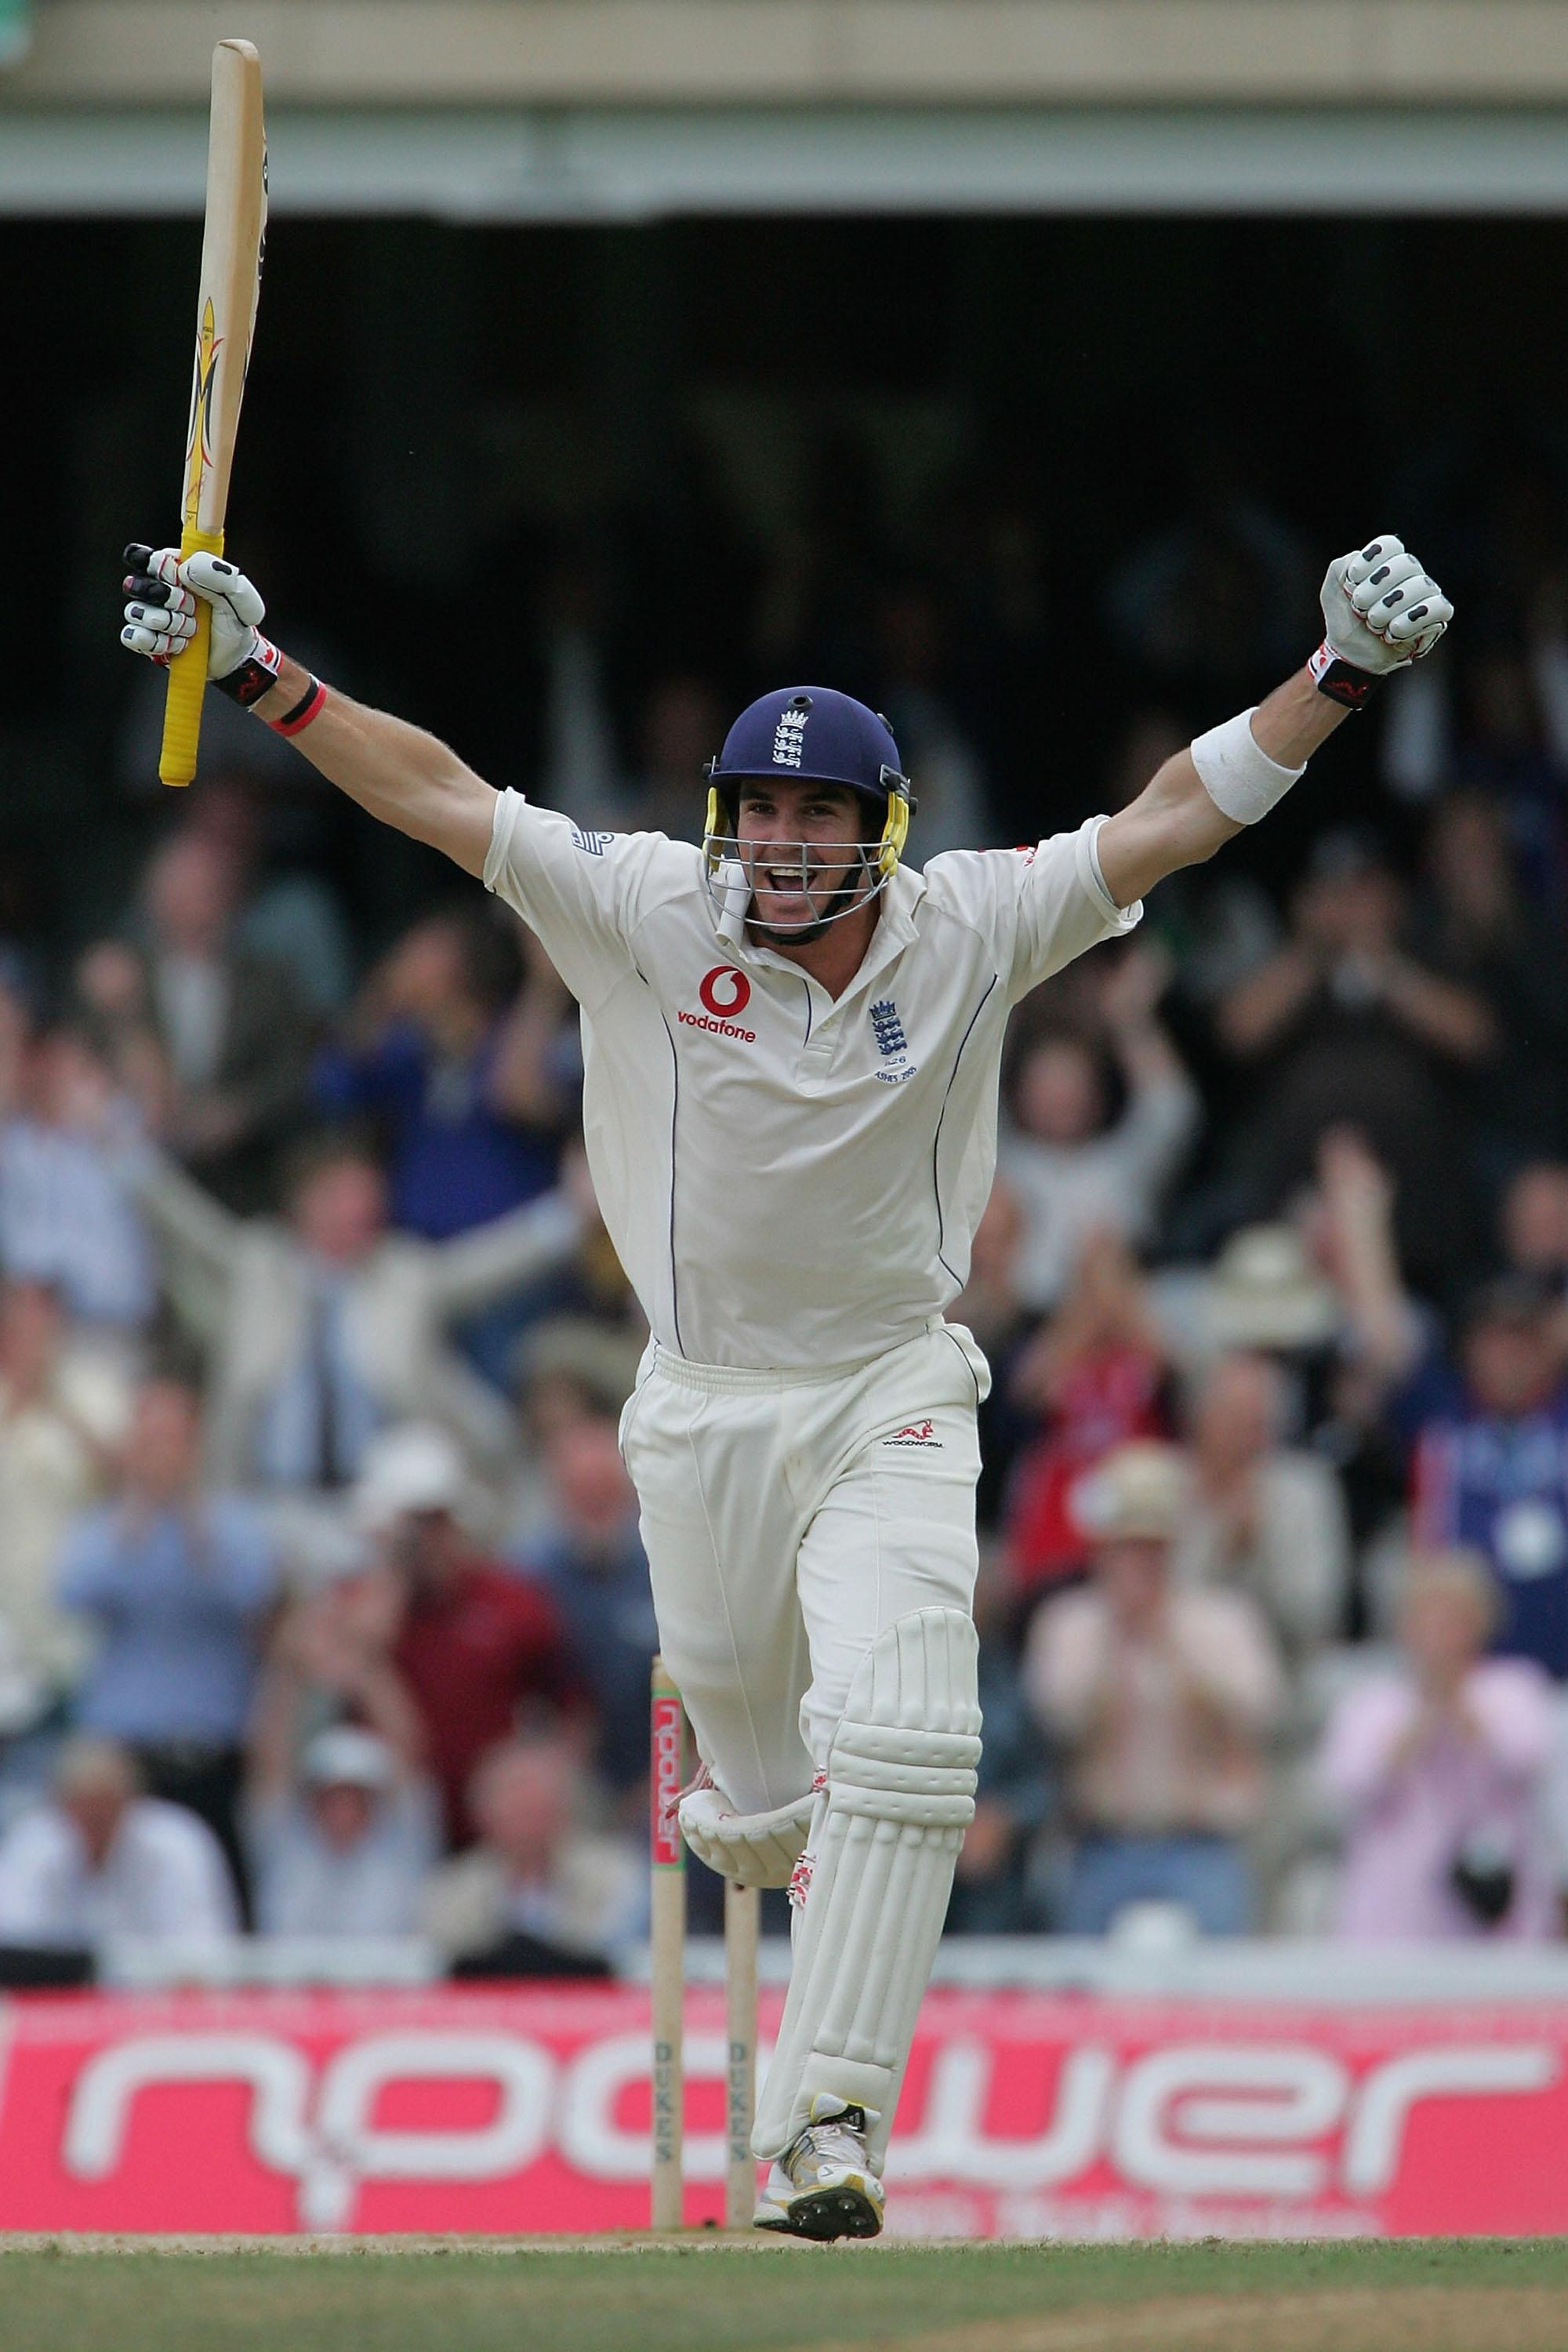 Kevin Pietersen was one of England's most exciting, dynamic batsmen